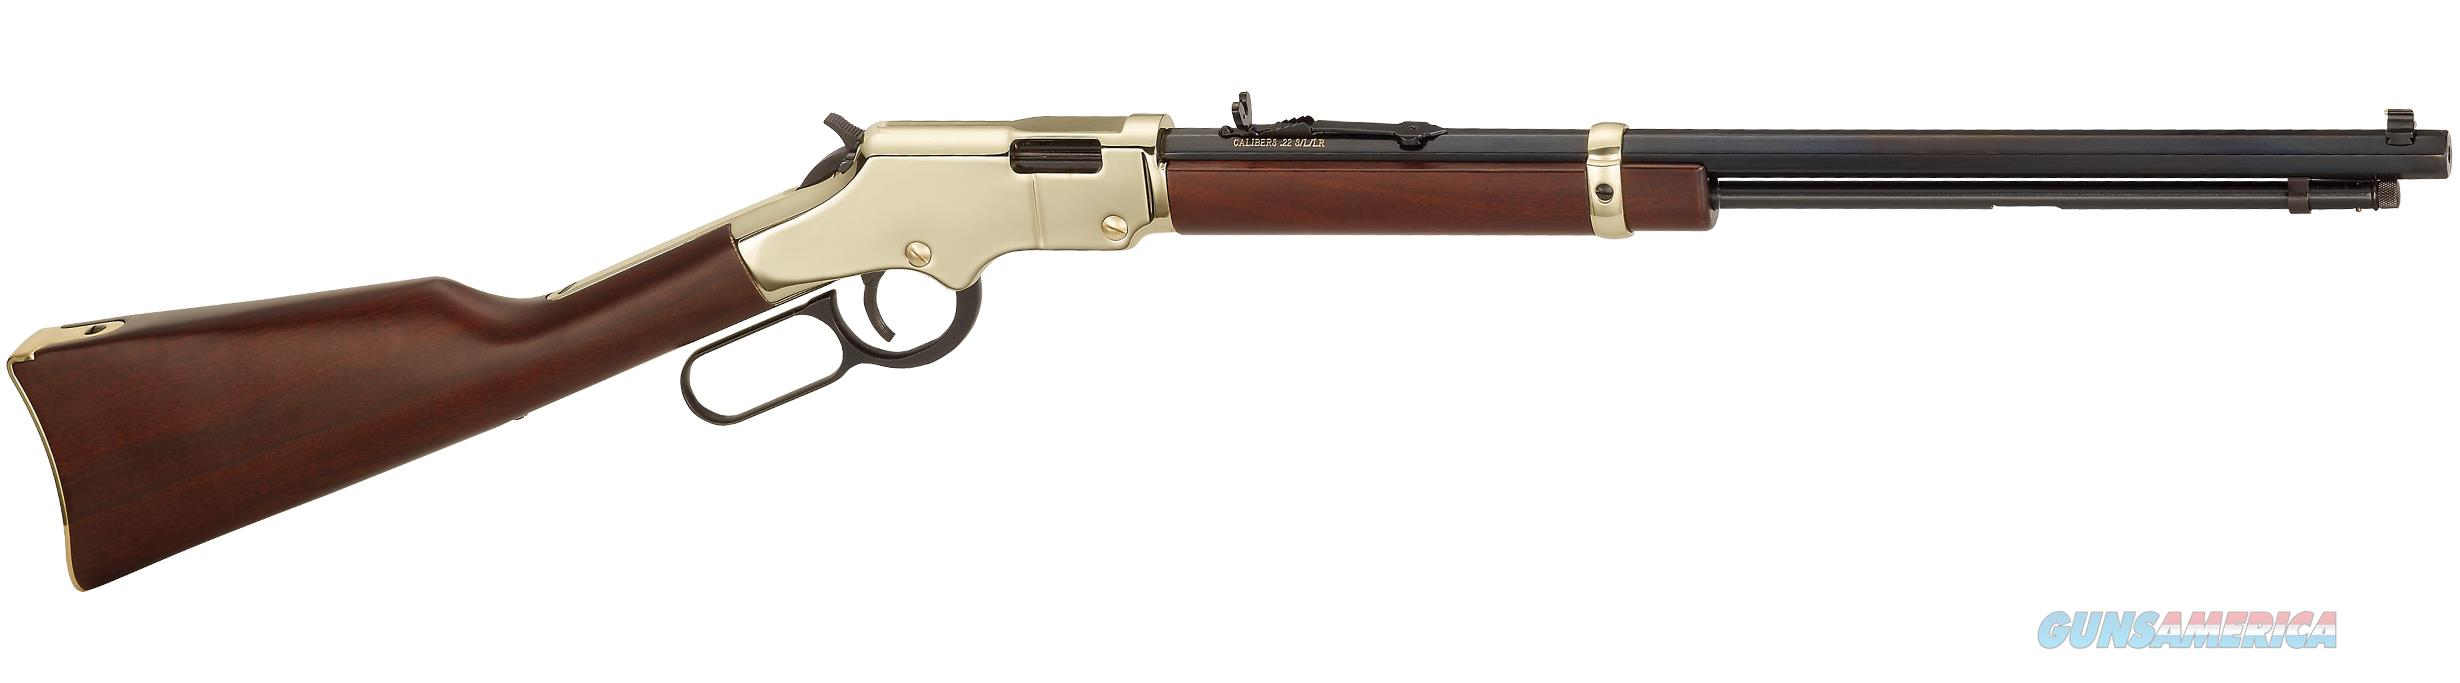 "Henry Golden Boy, 22 S/L/LR, 16 Rds LR, 20"" barrel, Mfg# H004, Brass receiver, NIB  Guns > Rifles > Henry Rifle Company"